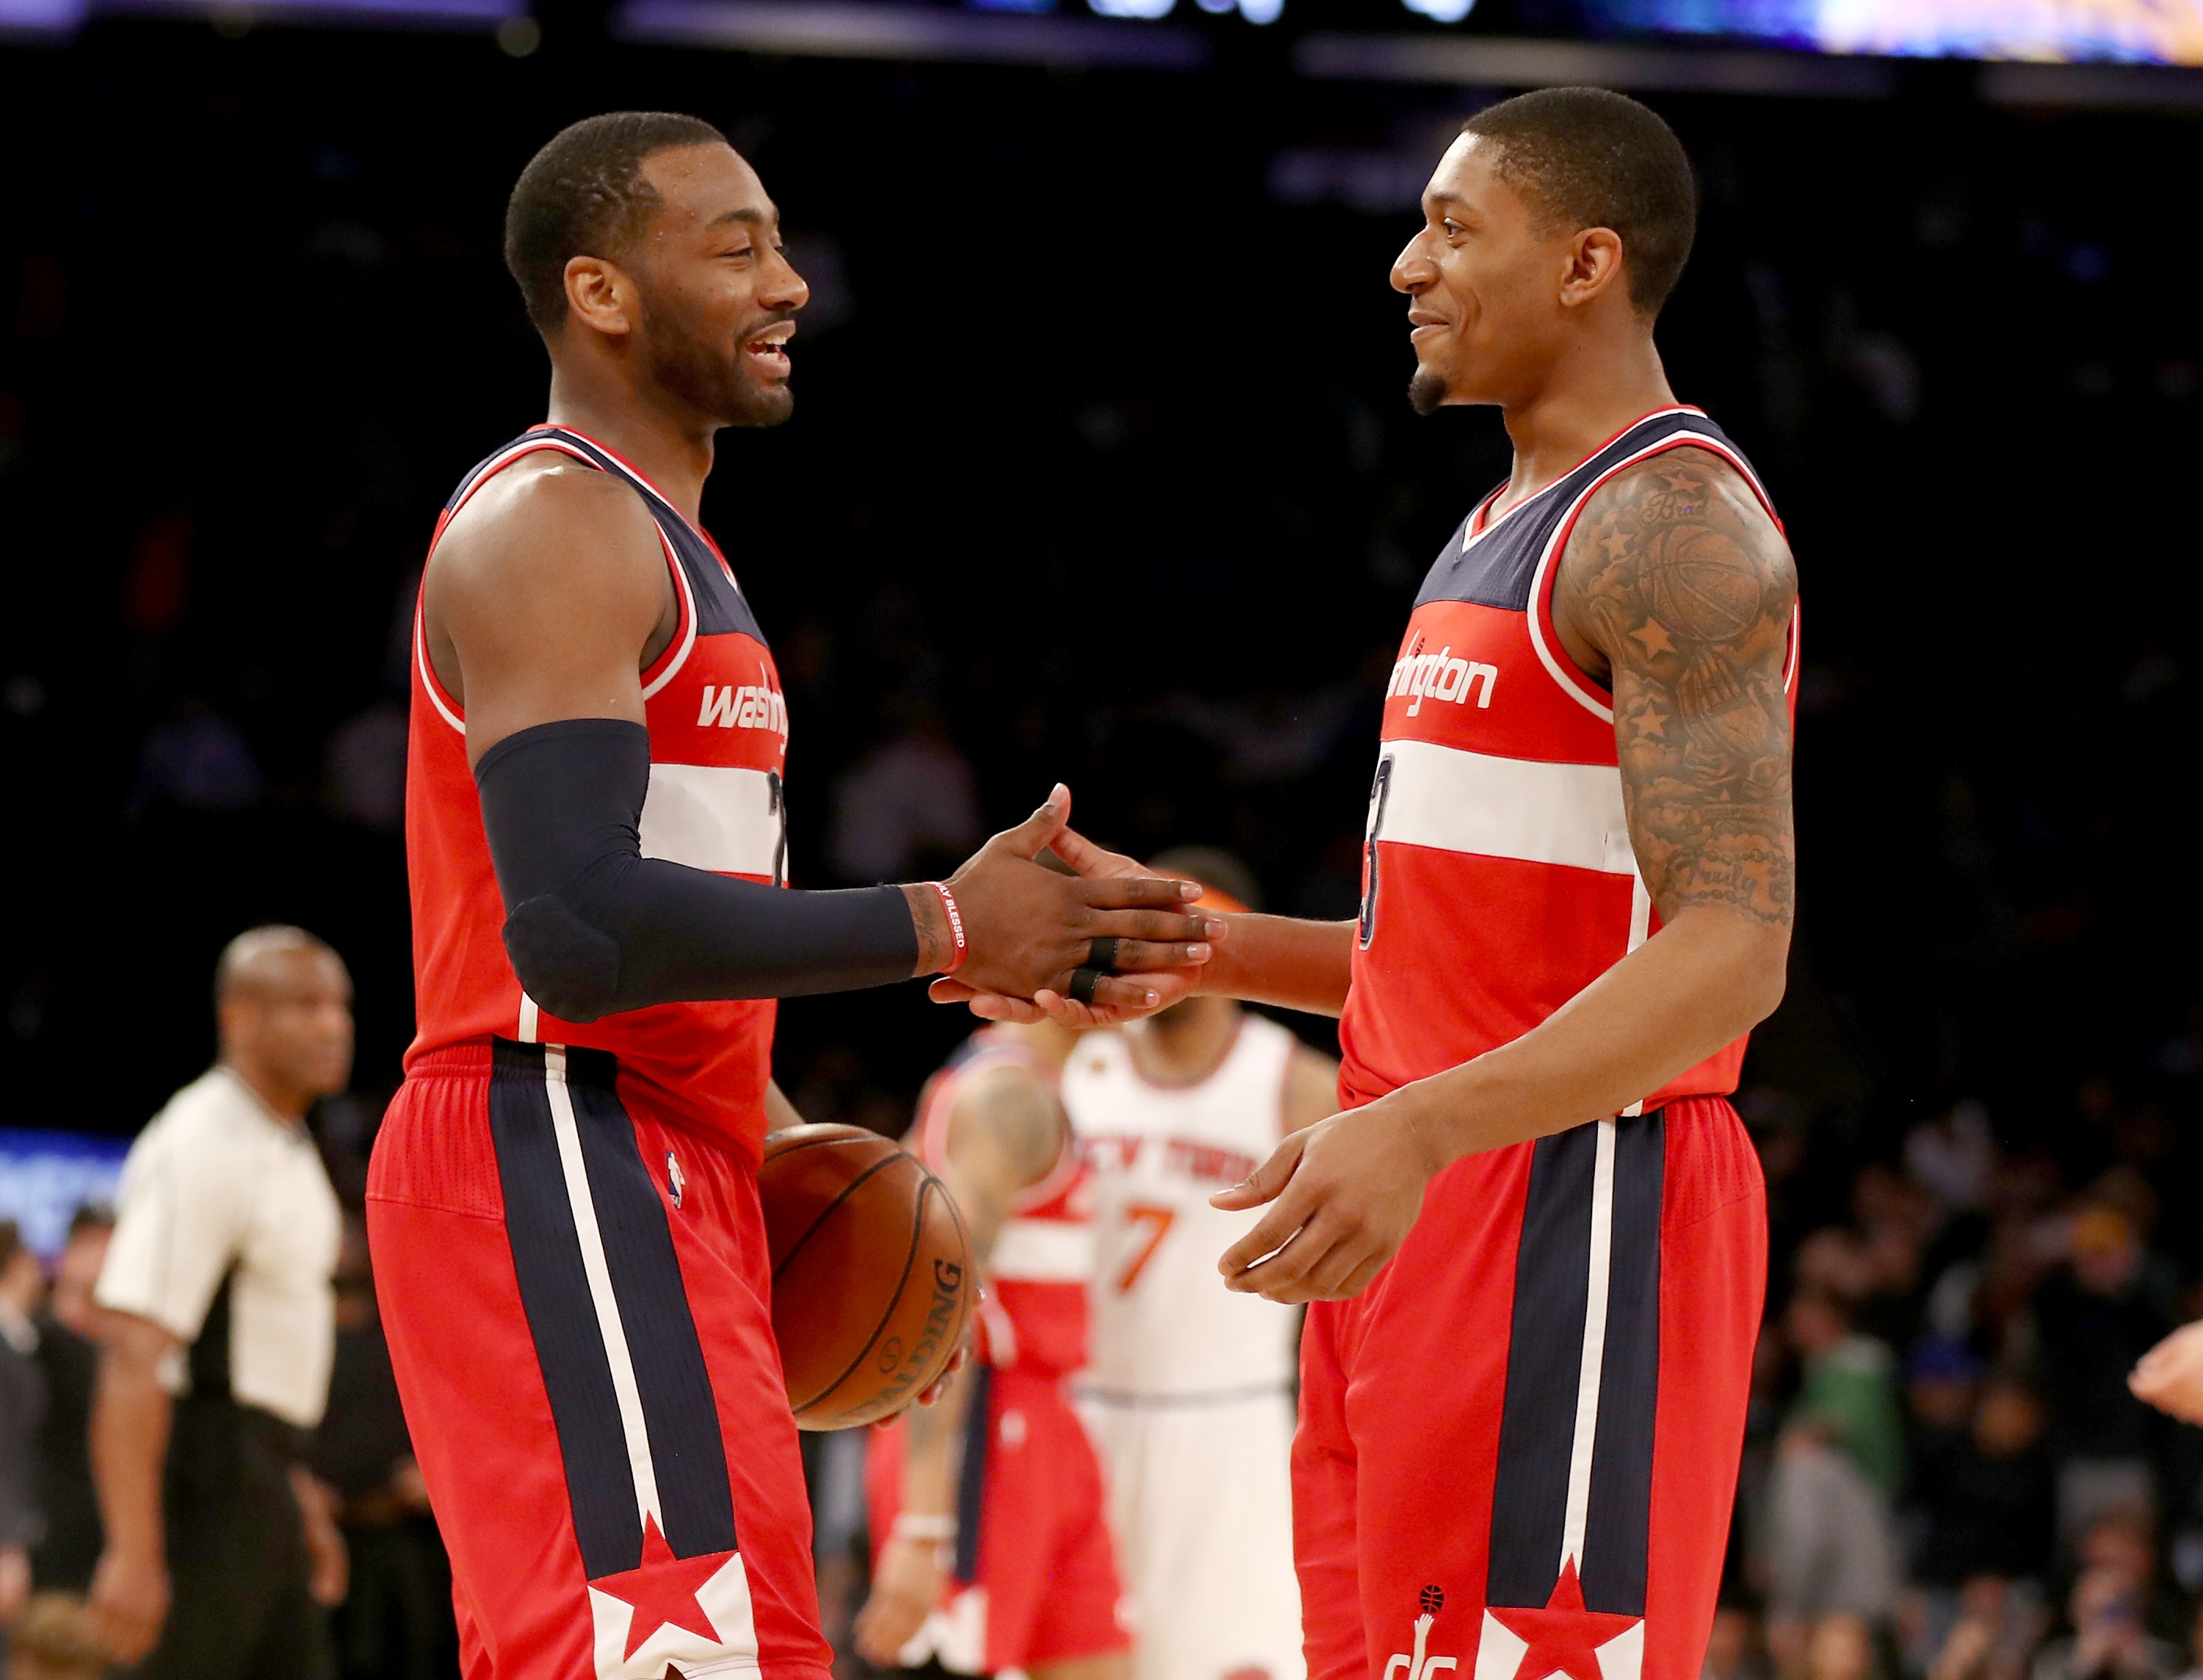 John Wall and Bradley Beal embrace on the court